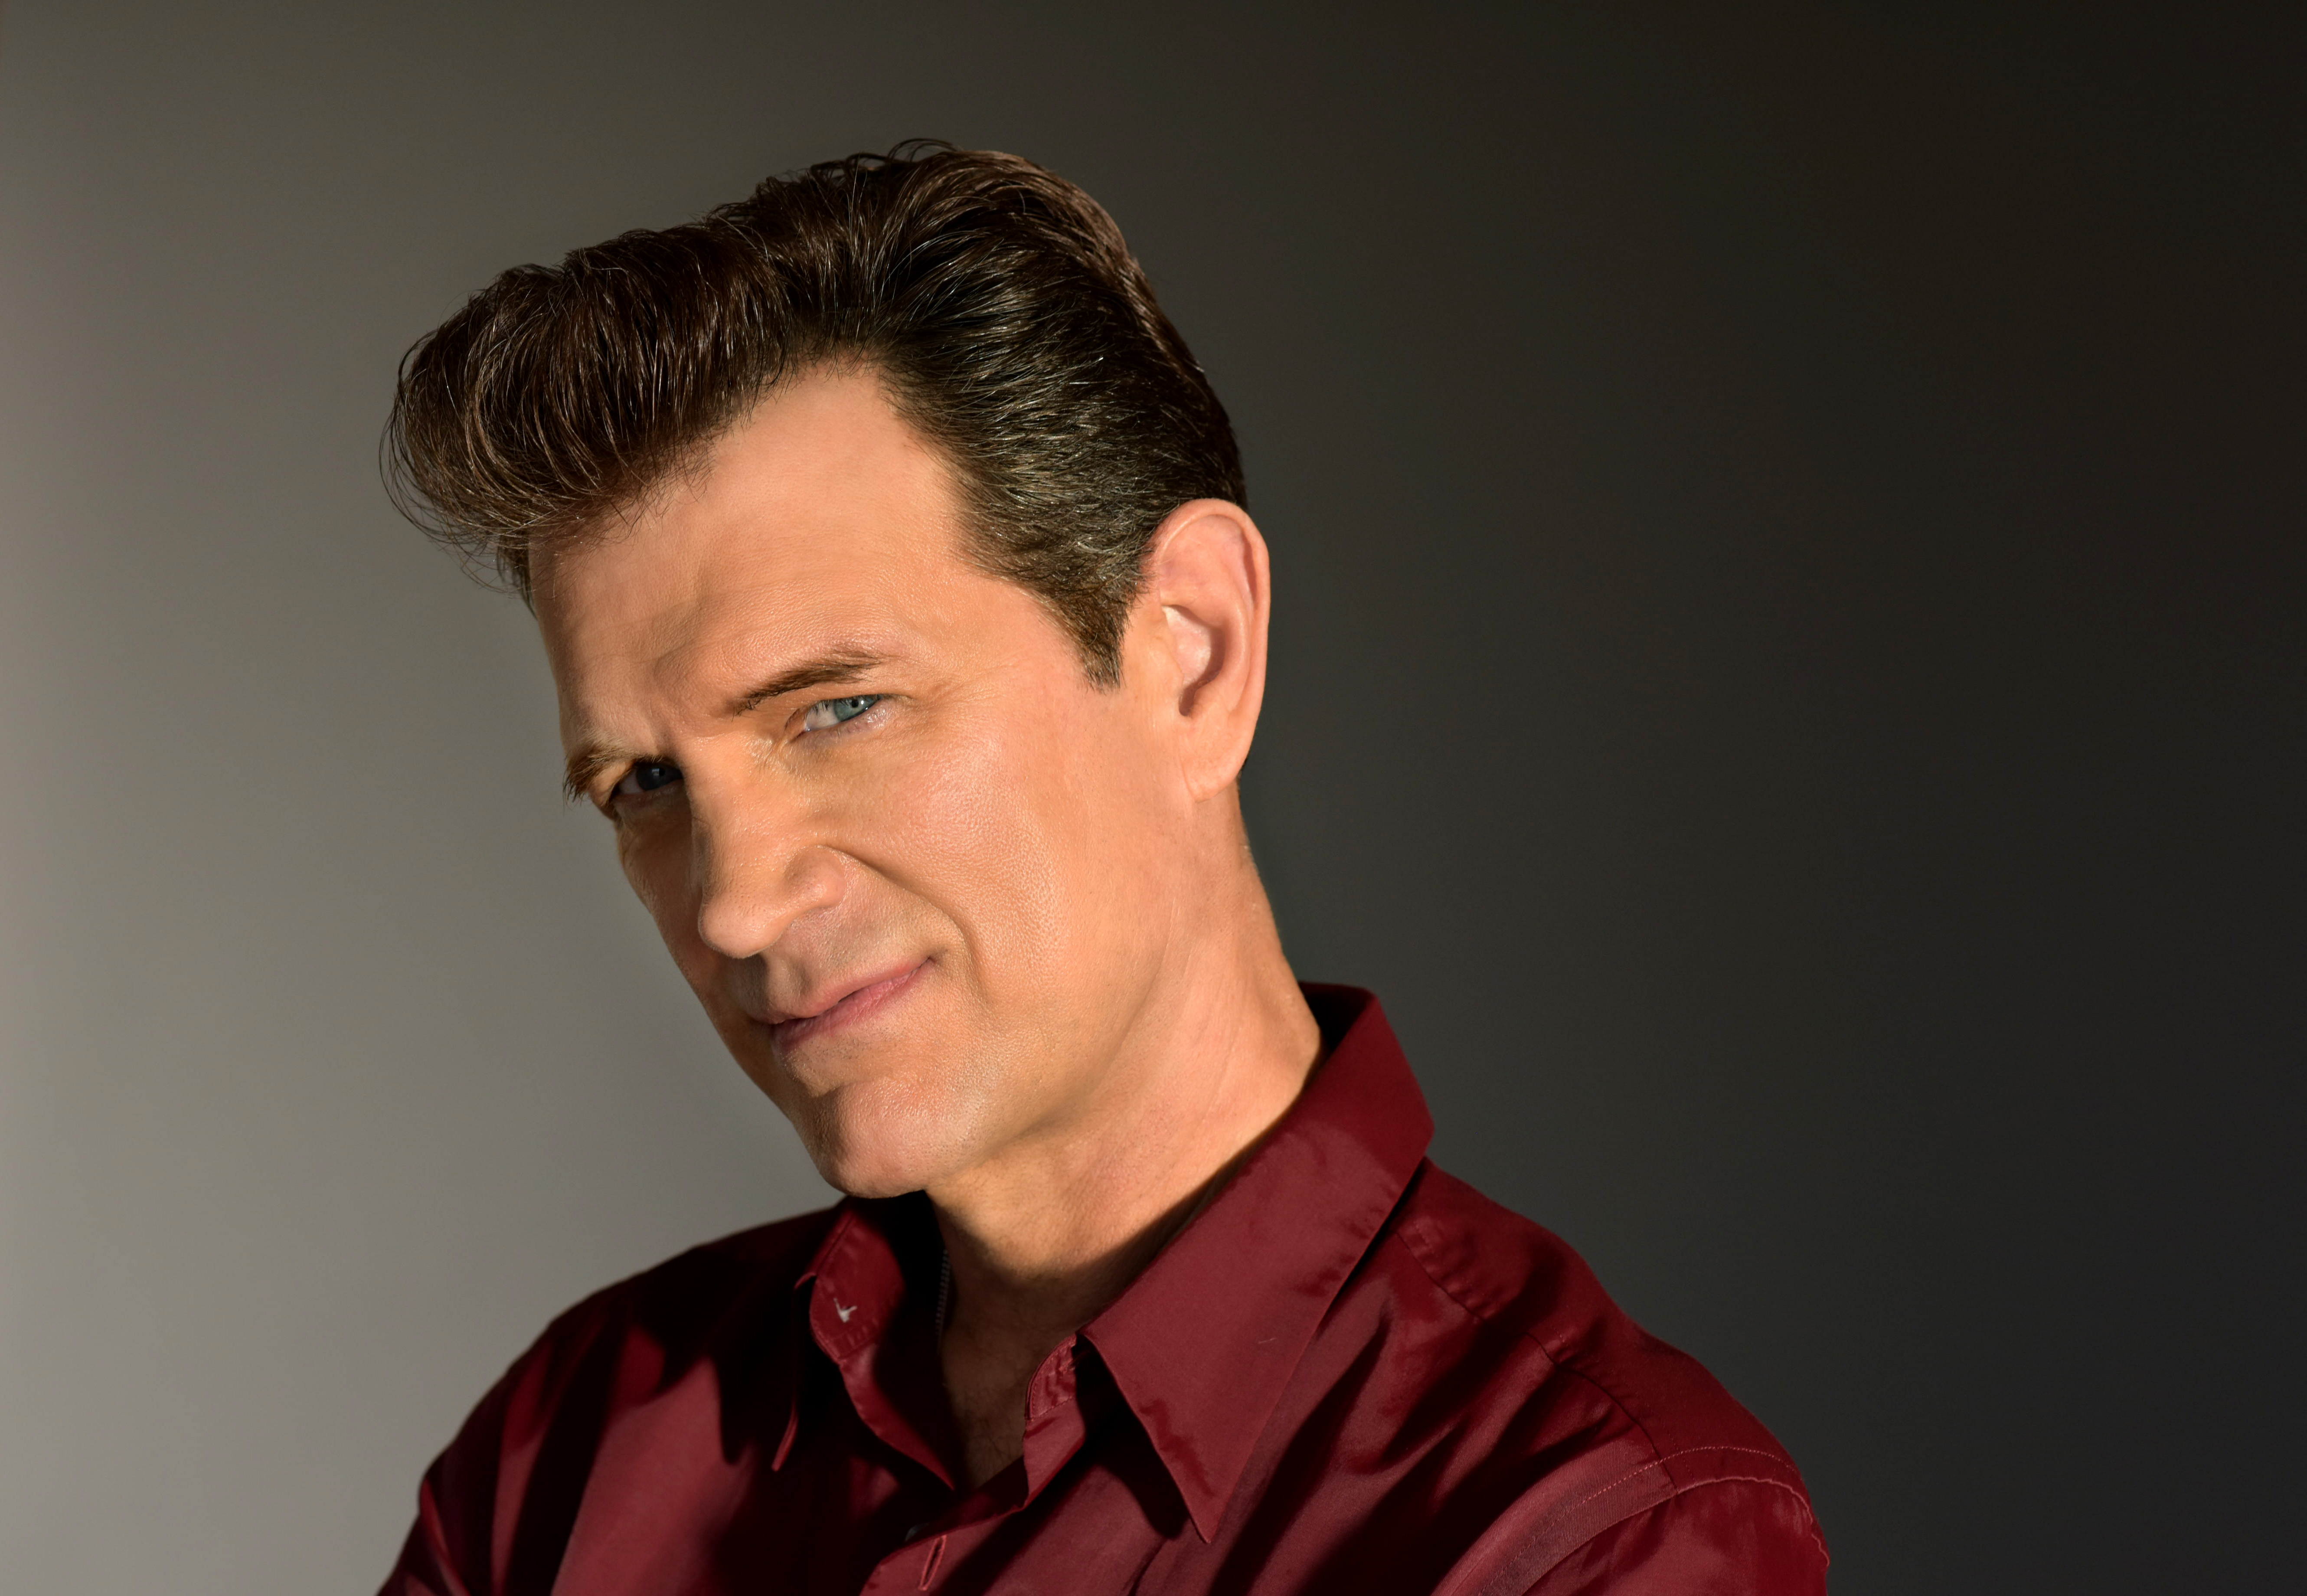 Chris Isaak Hd